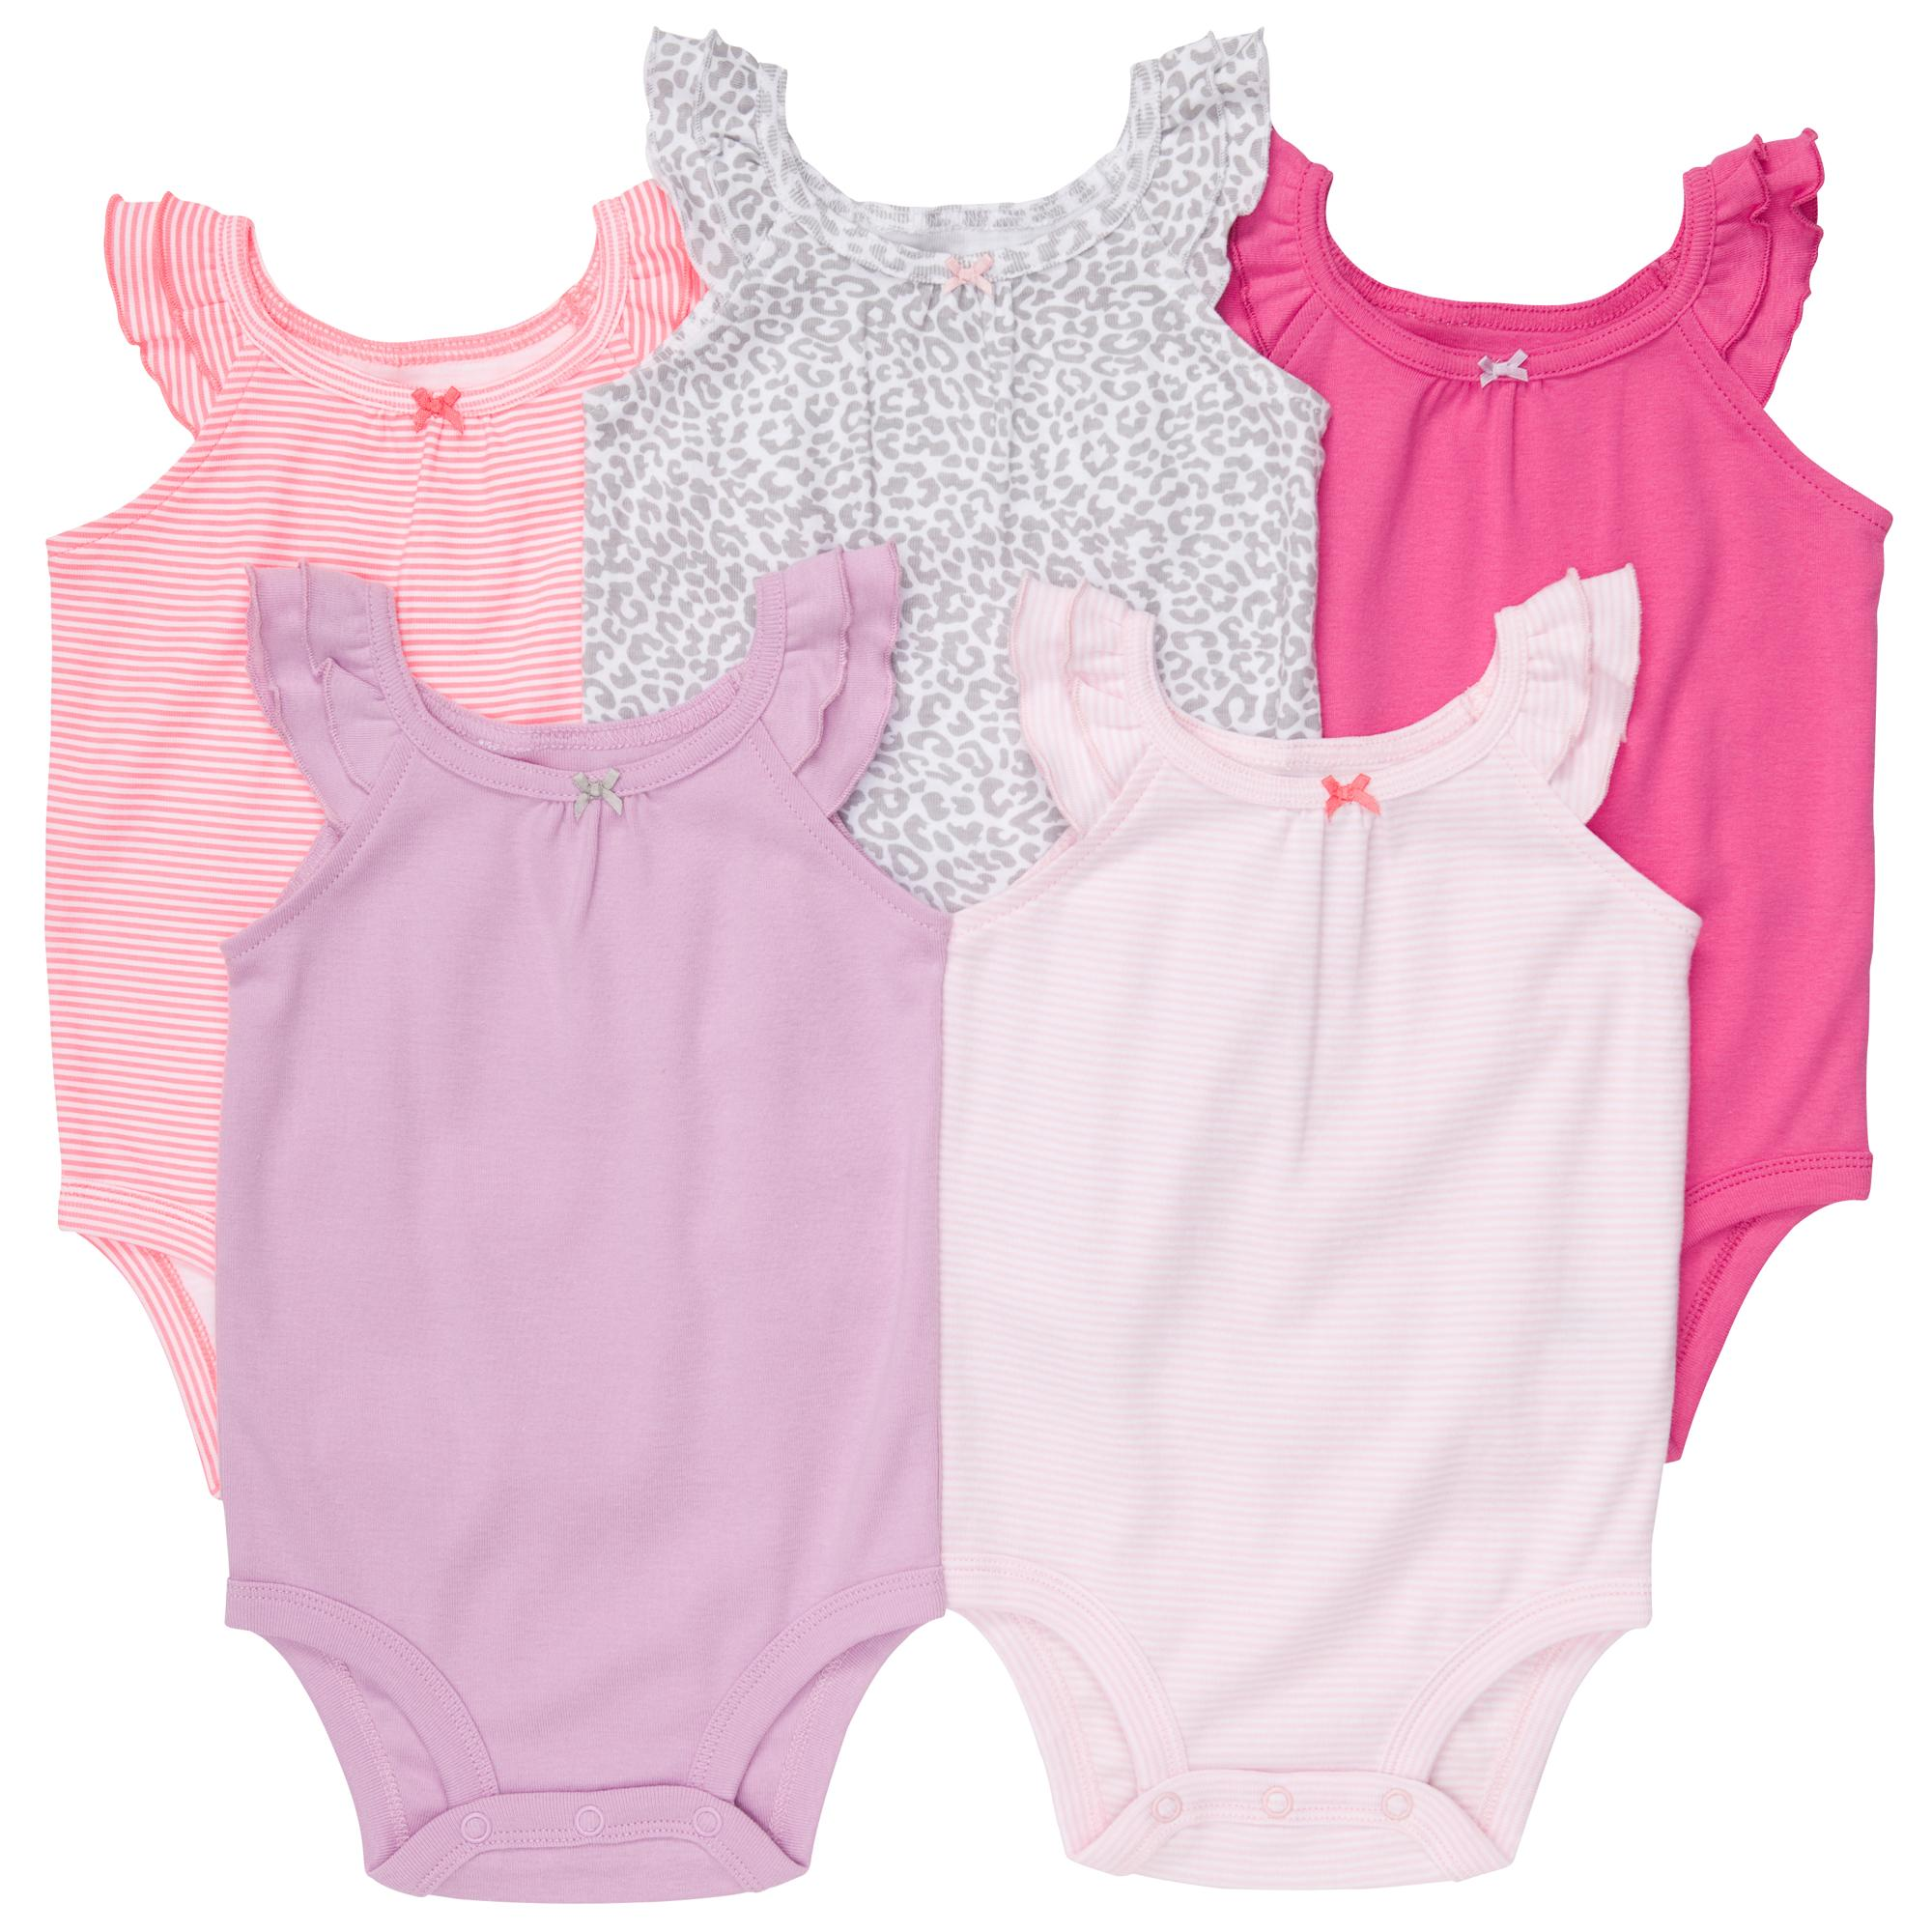 Carter's Baby Clothing Sale & $50 Gift Card Giveaway 6 6